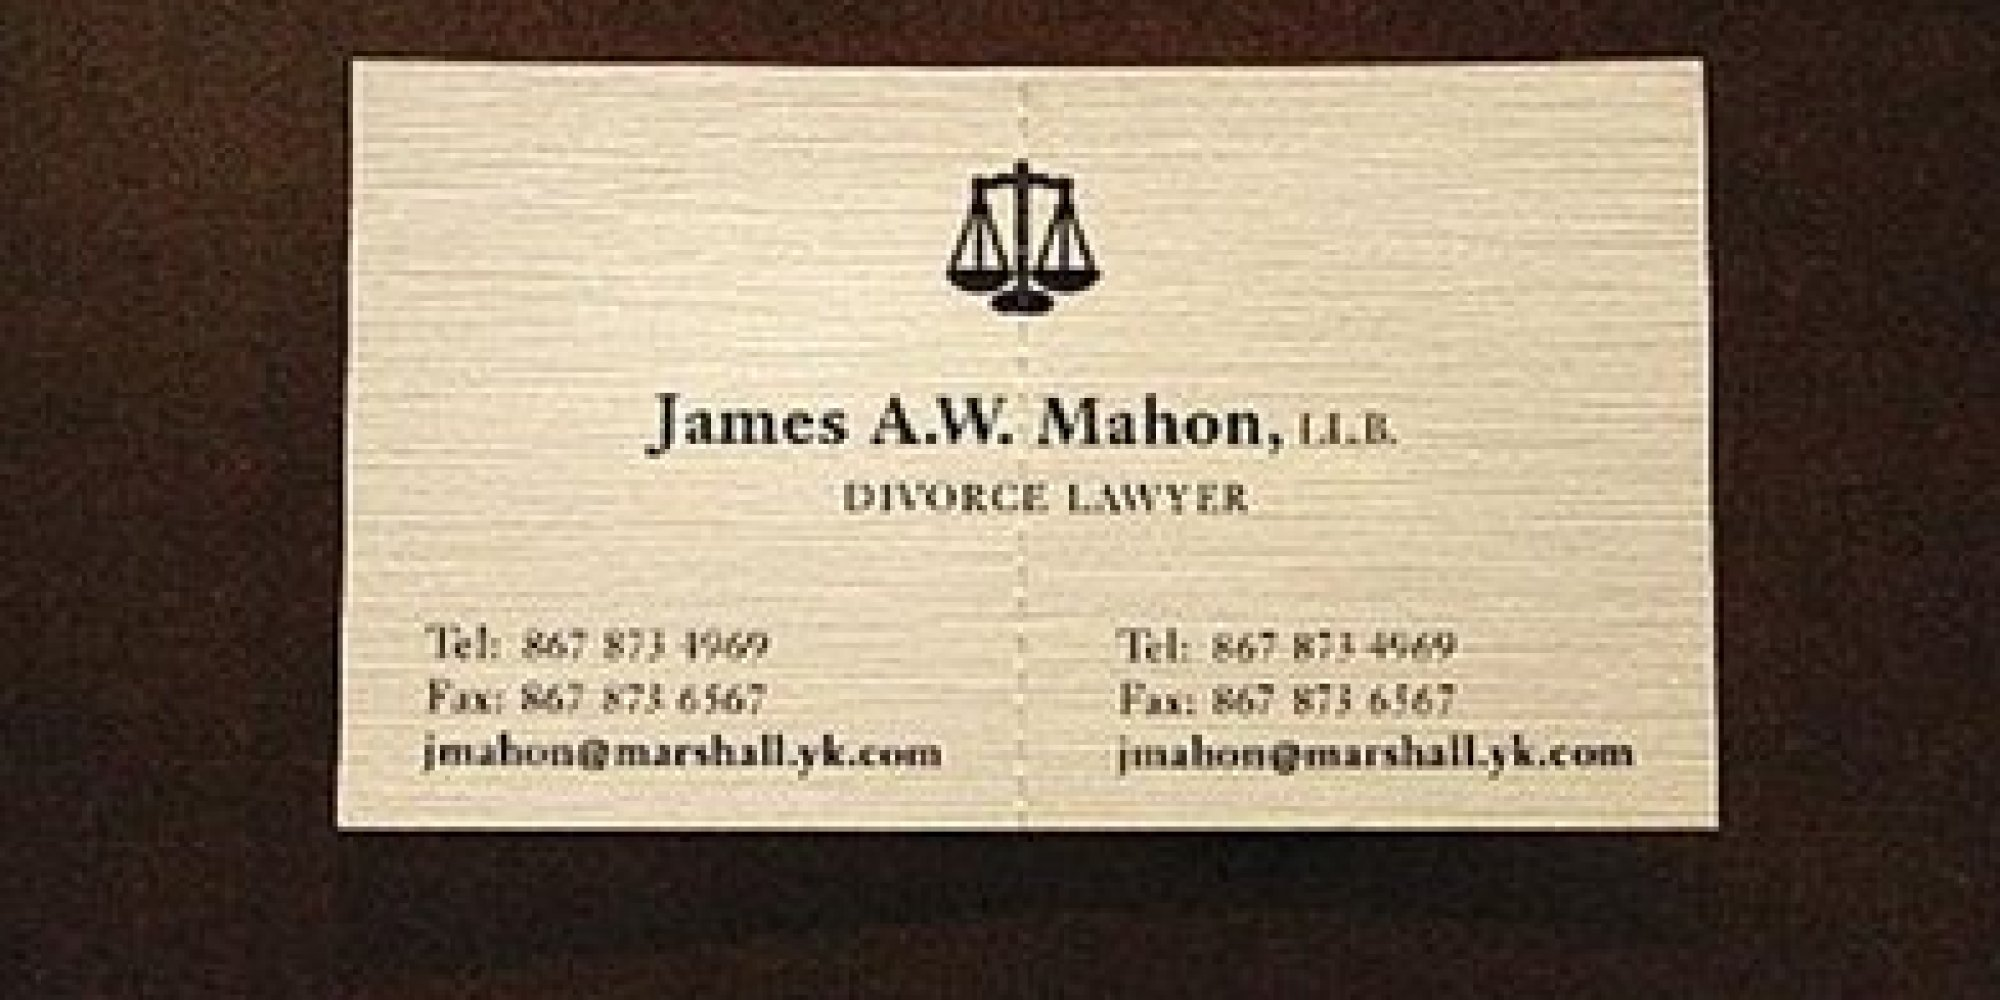 attorneys business card Minimfagencyco